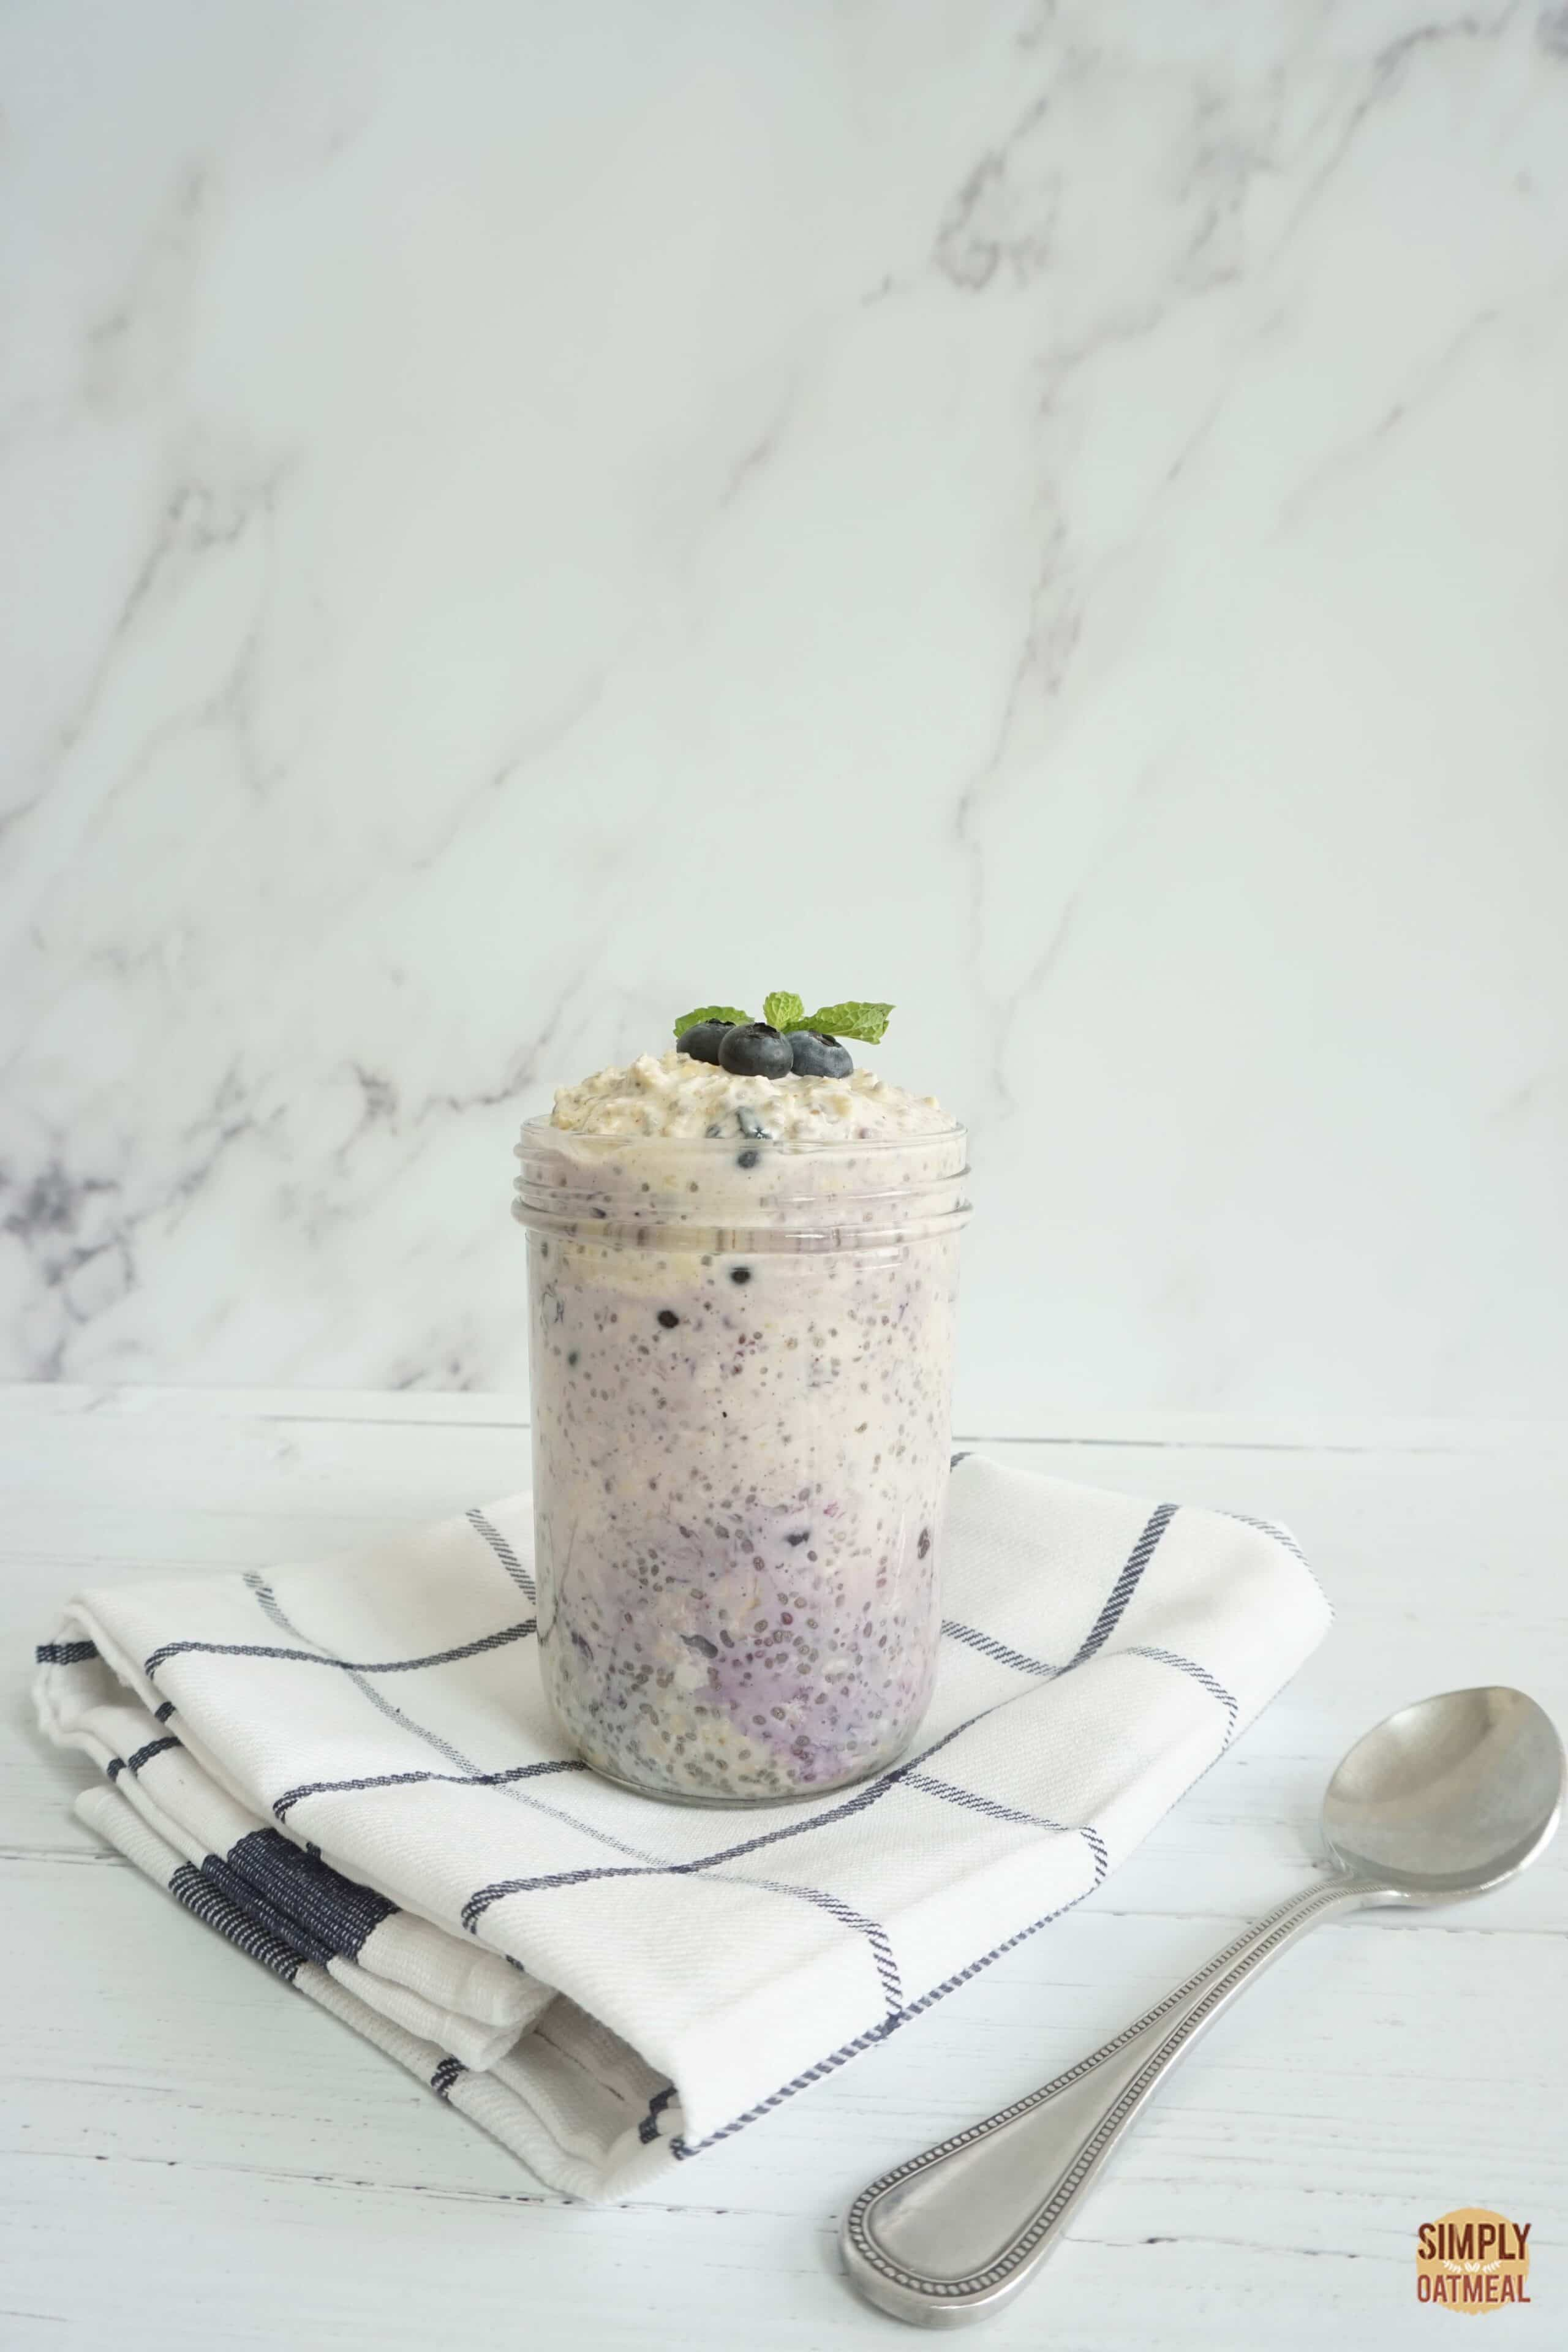 Mason jar filled with single serving of vegan blueberry overnight oats